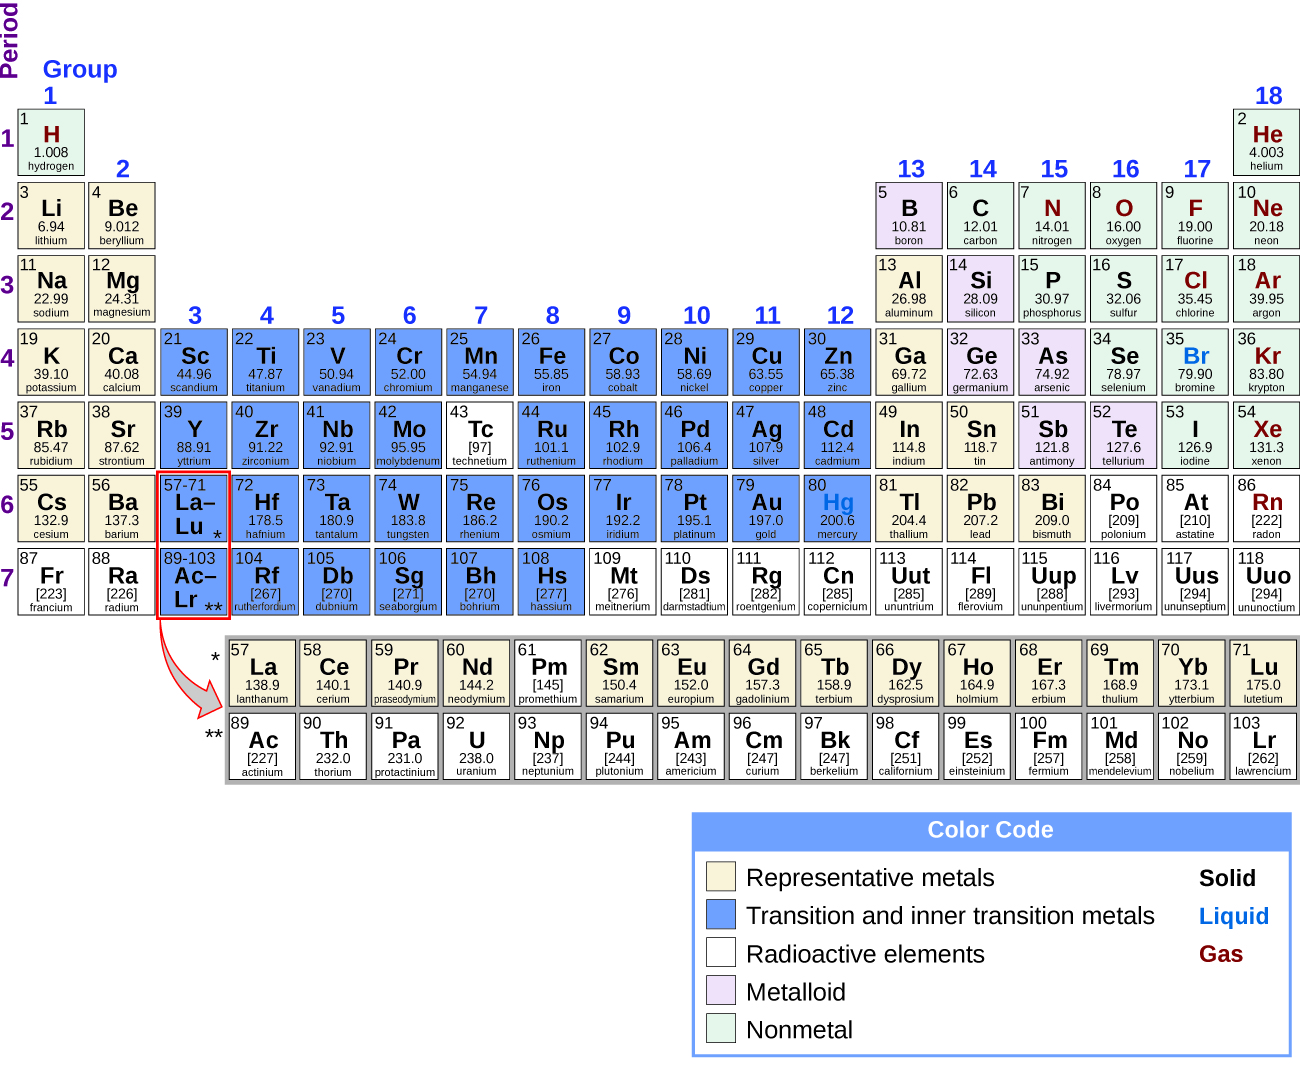 Periodicity chemistry openstax cnx the periodic table of elements is shown the 18 columns are labeled group urtaz Image collections